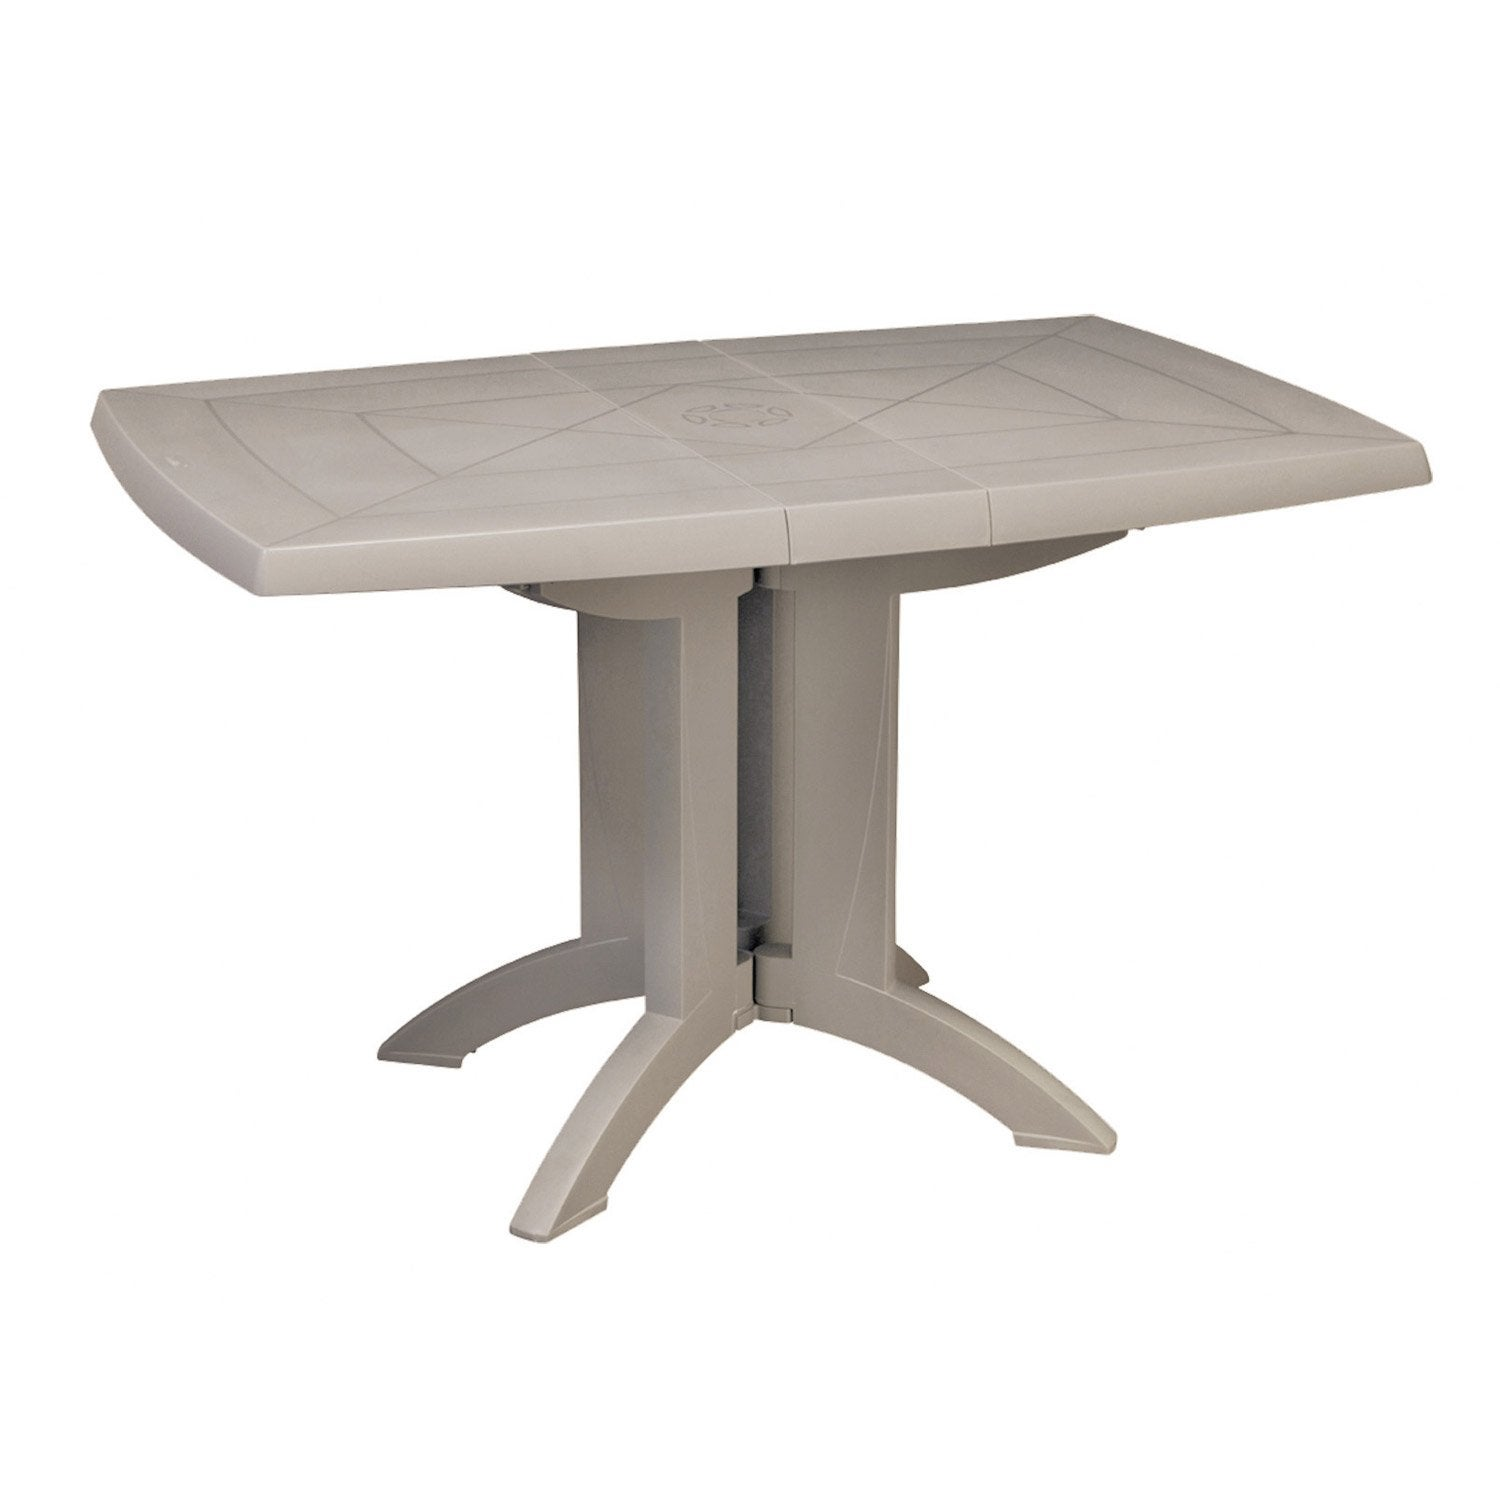 Table jardin 4 personnes maison design - Table de jardin pliante ...